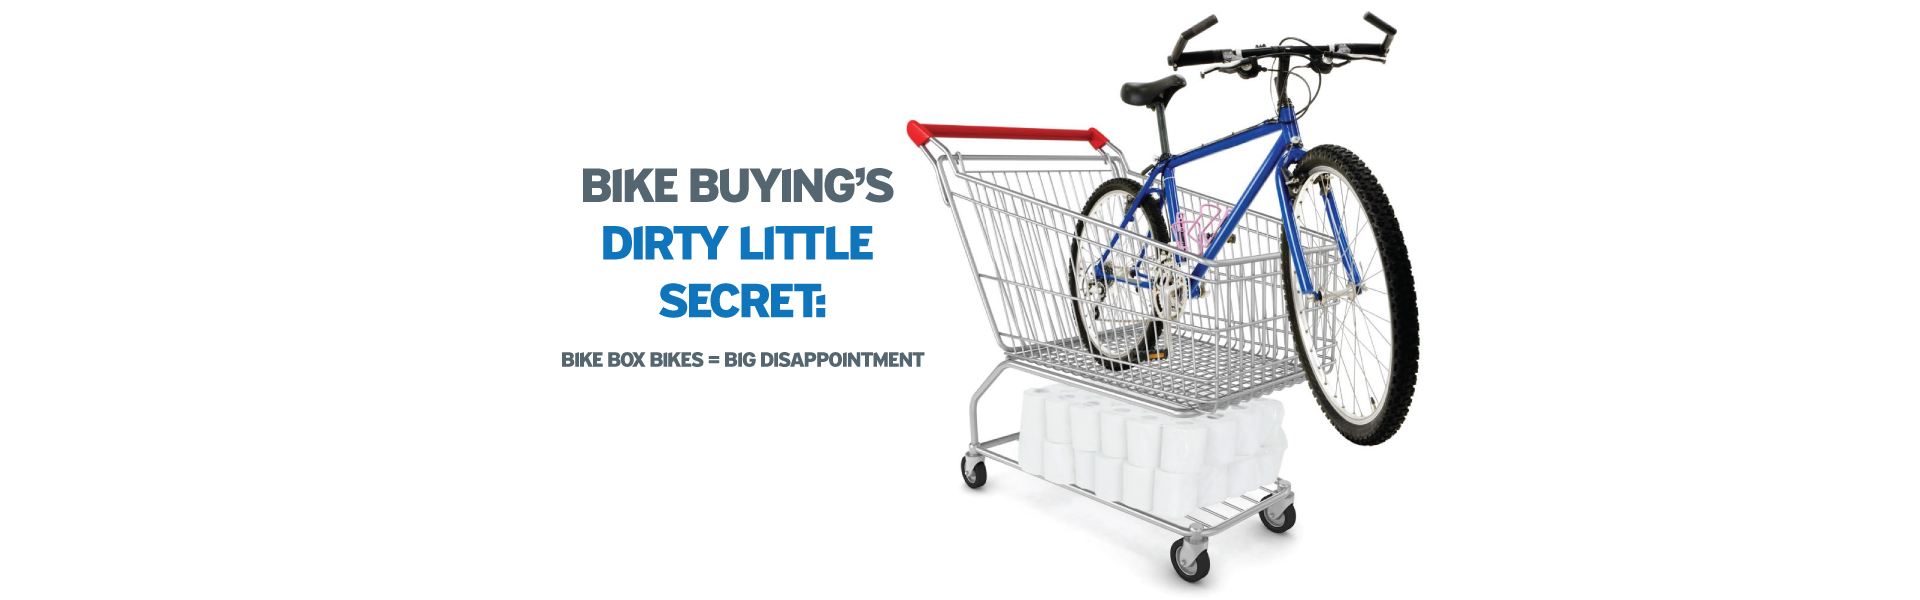 Why Buy from a Giant Bicycle Retailer?